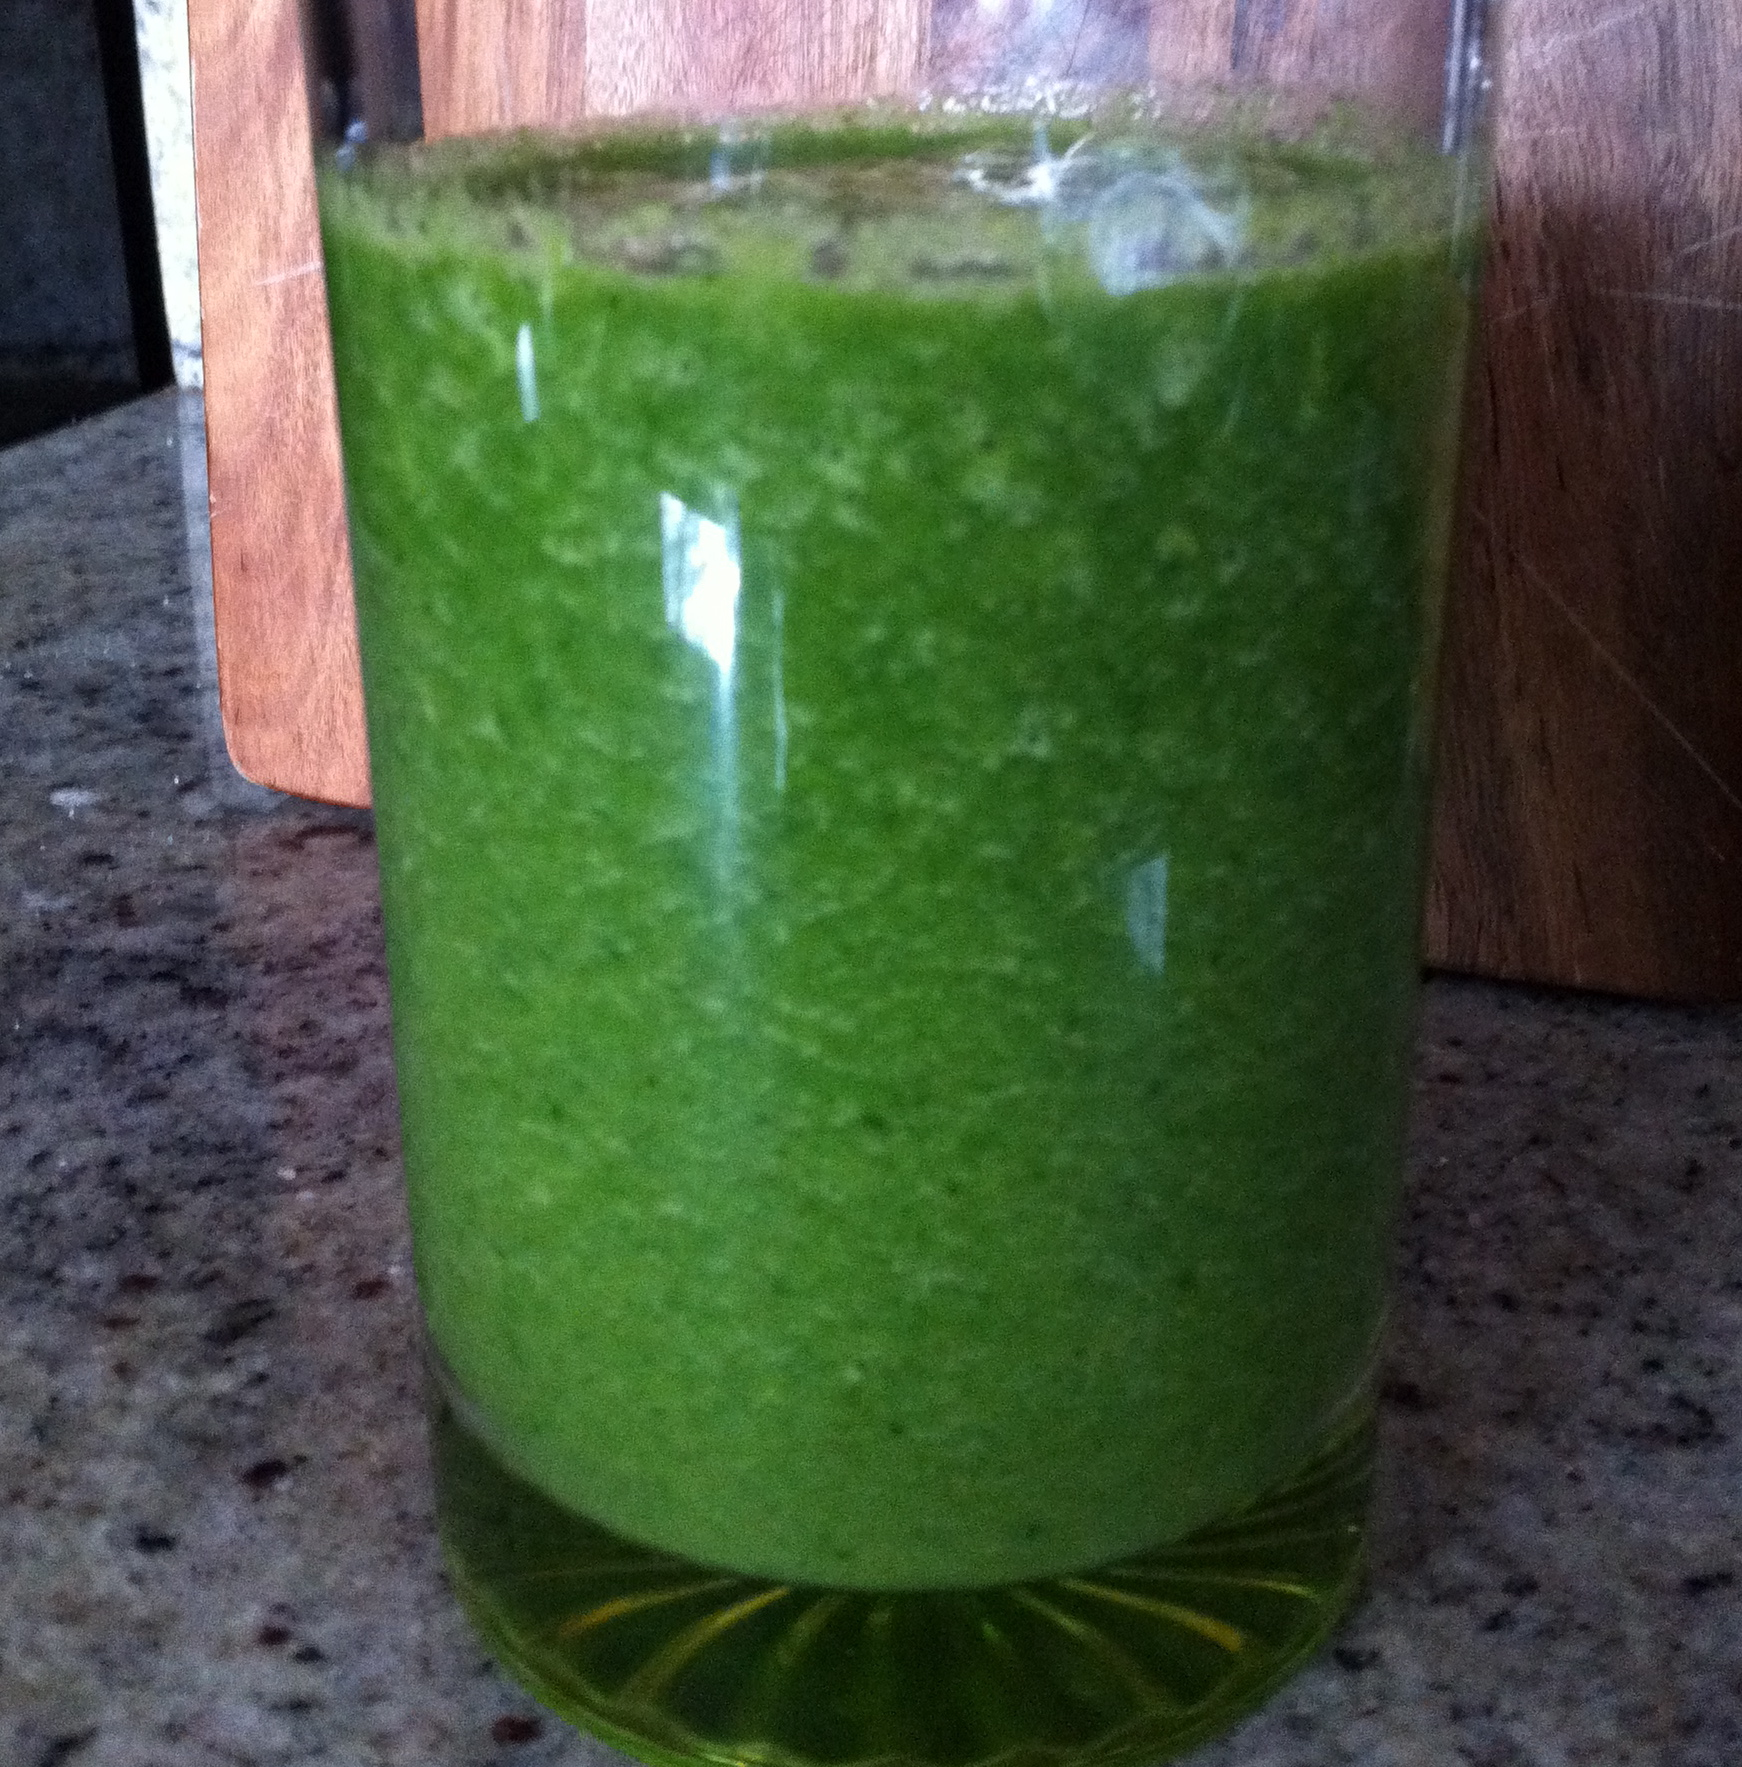 Green Smoothie (shh...there's kale in it)